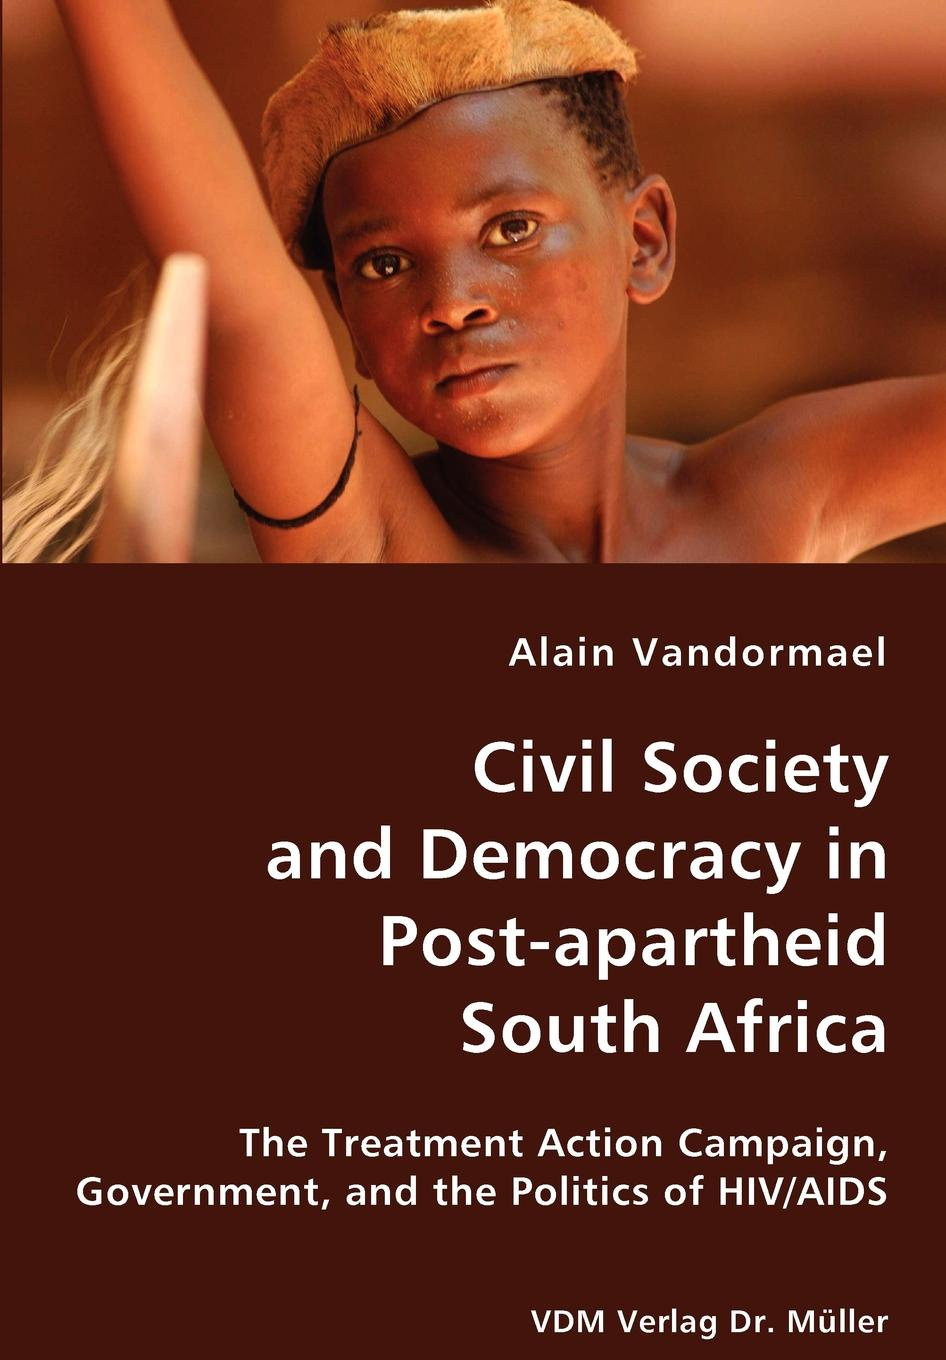 Alain Vandormael Civil Society and Democracy in Post-apartheid South Africa south africa 07